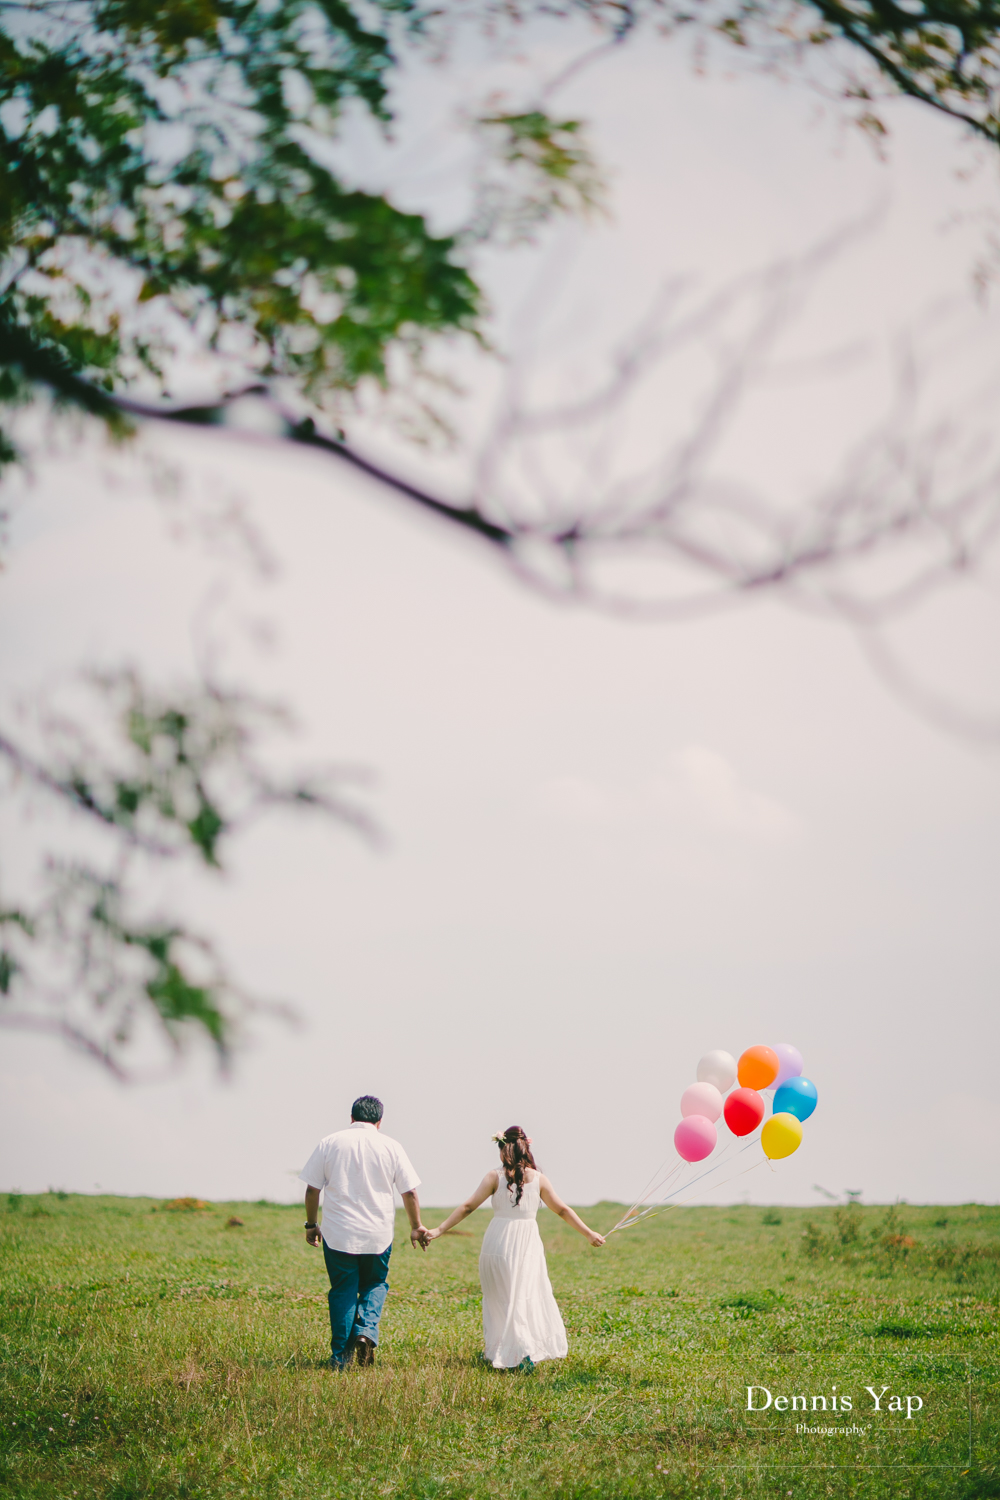 samson wendy prewedding ukm farm dennis yap photography greens-5.jpg